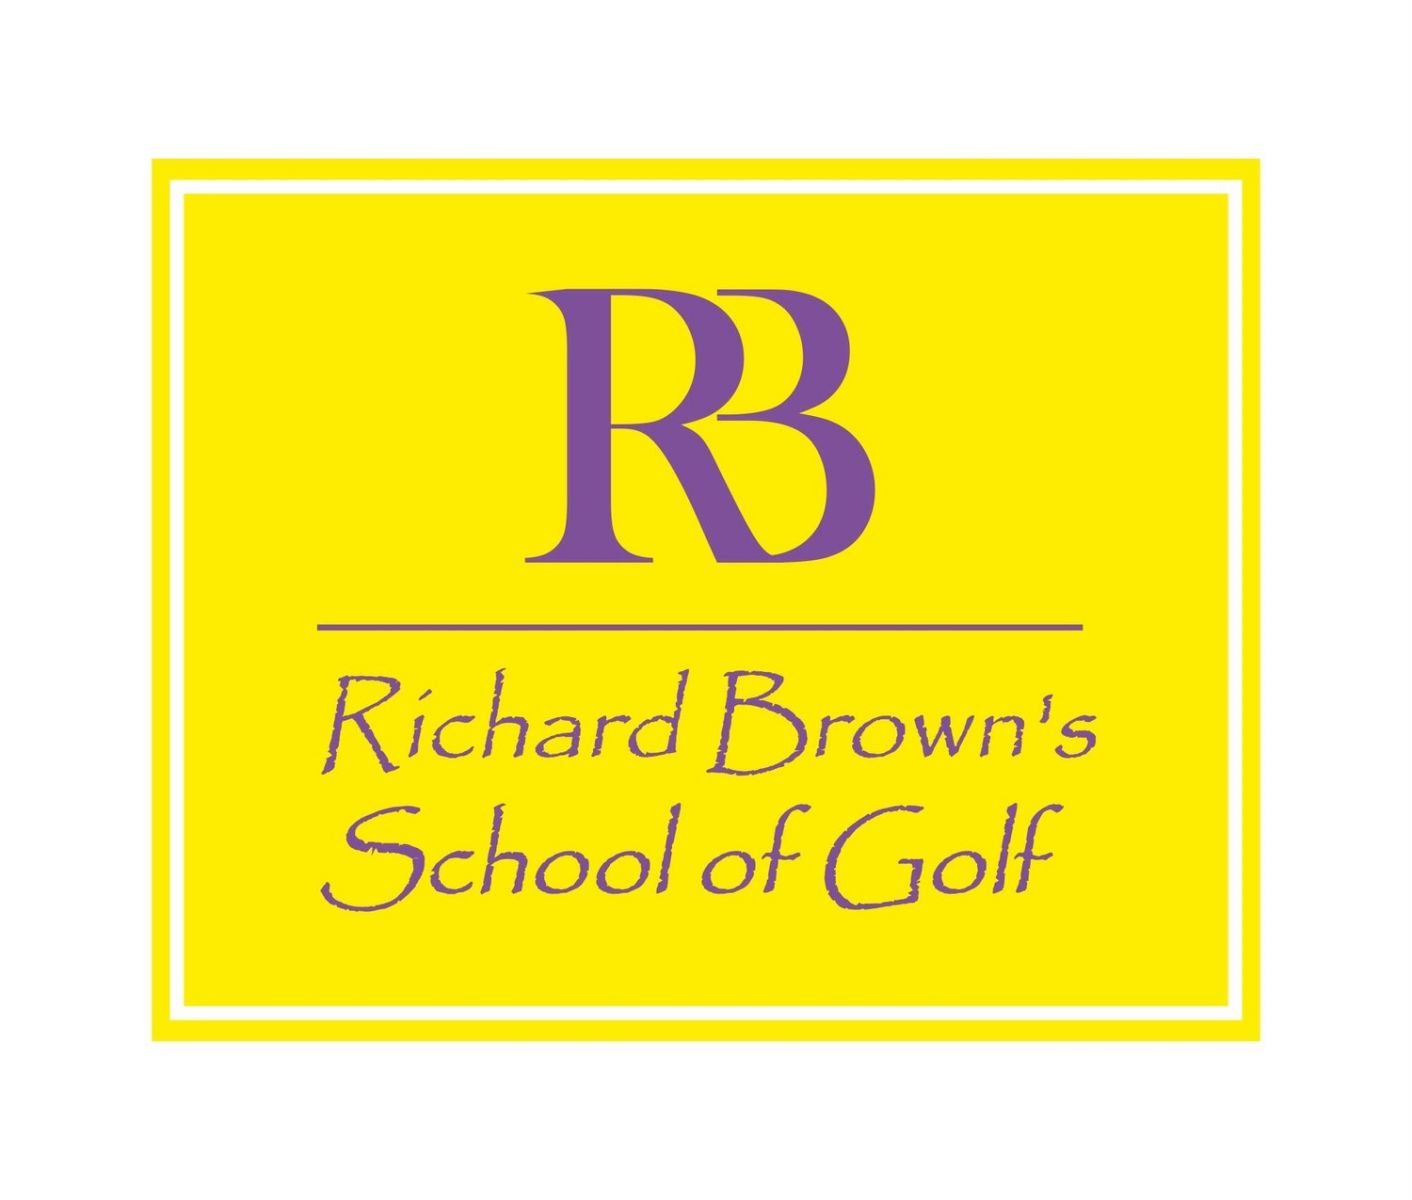 Richard Brown's School of Golf